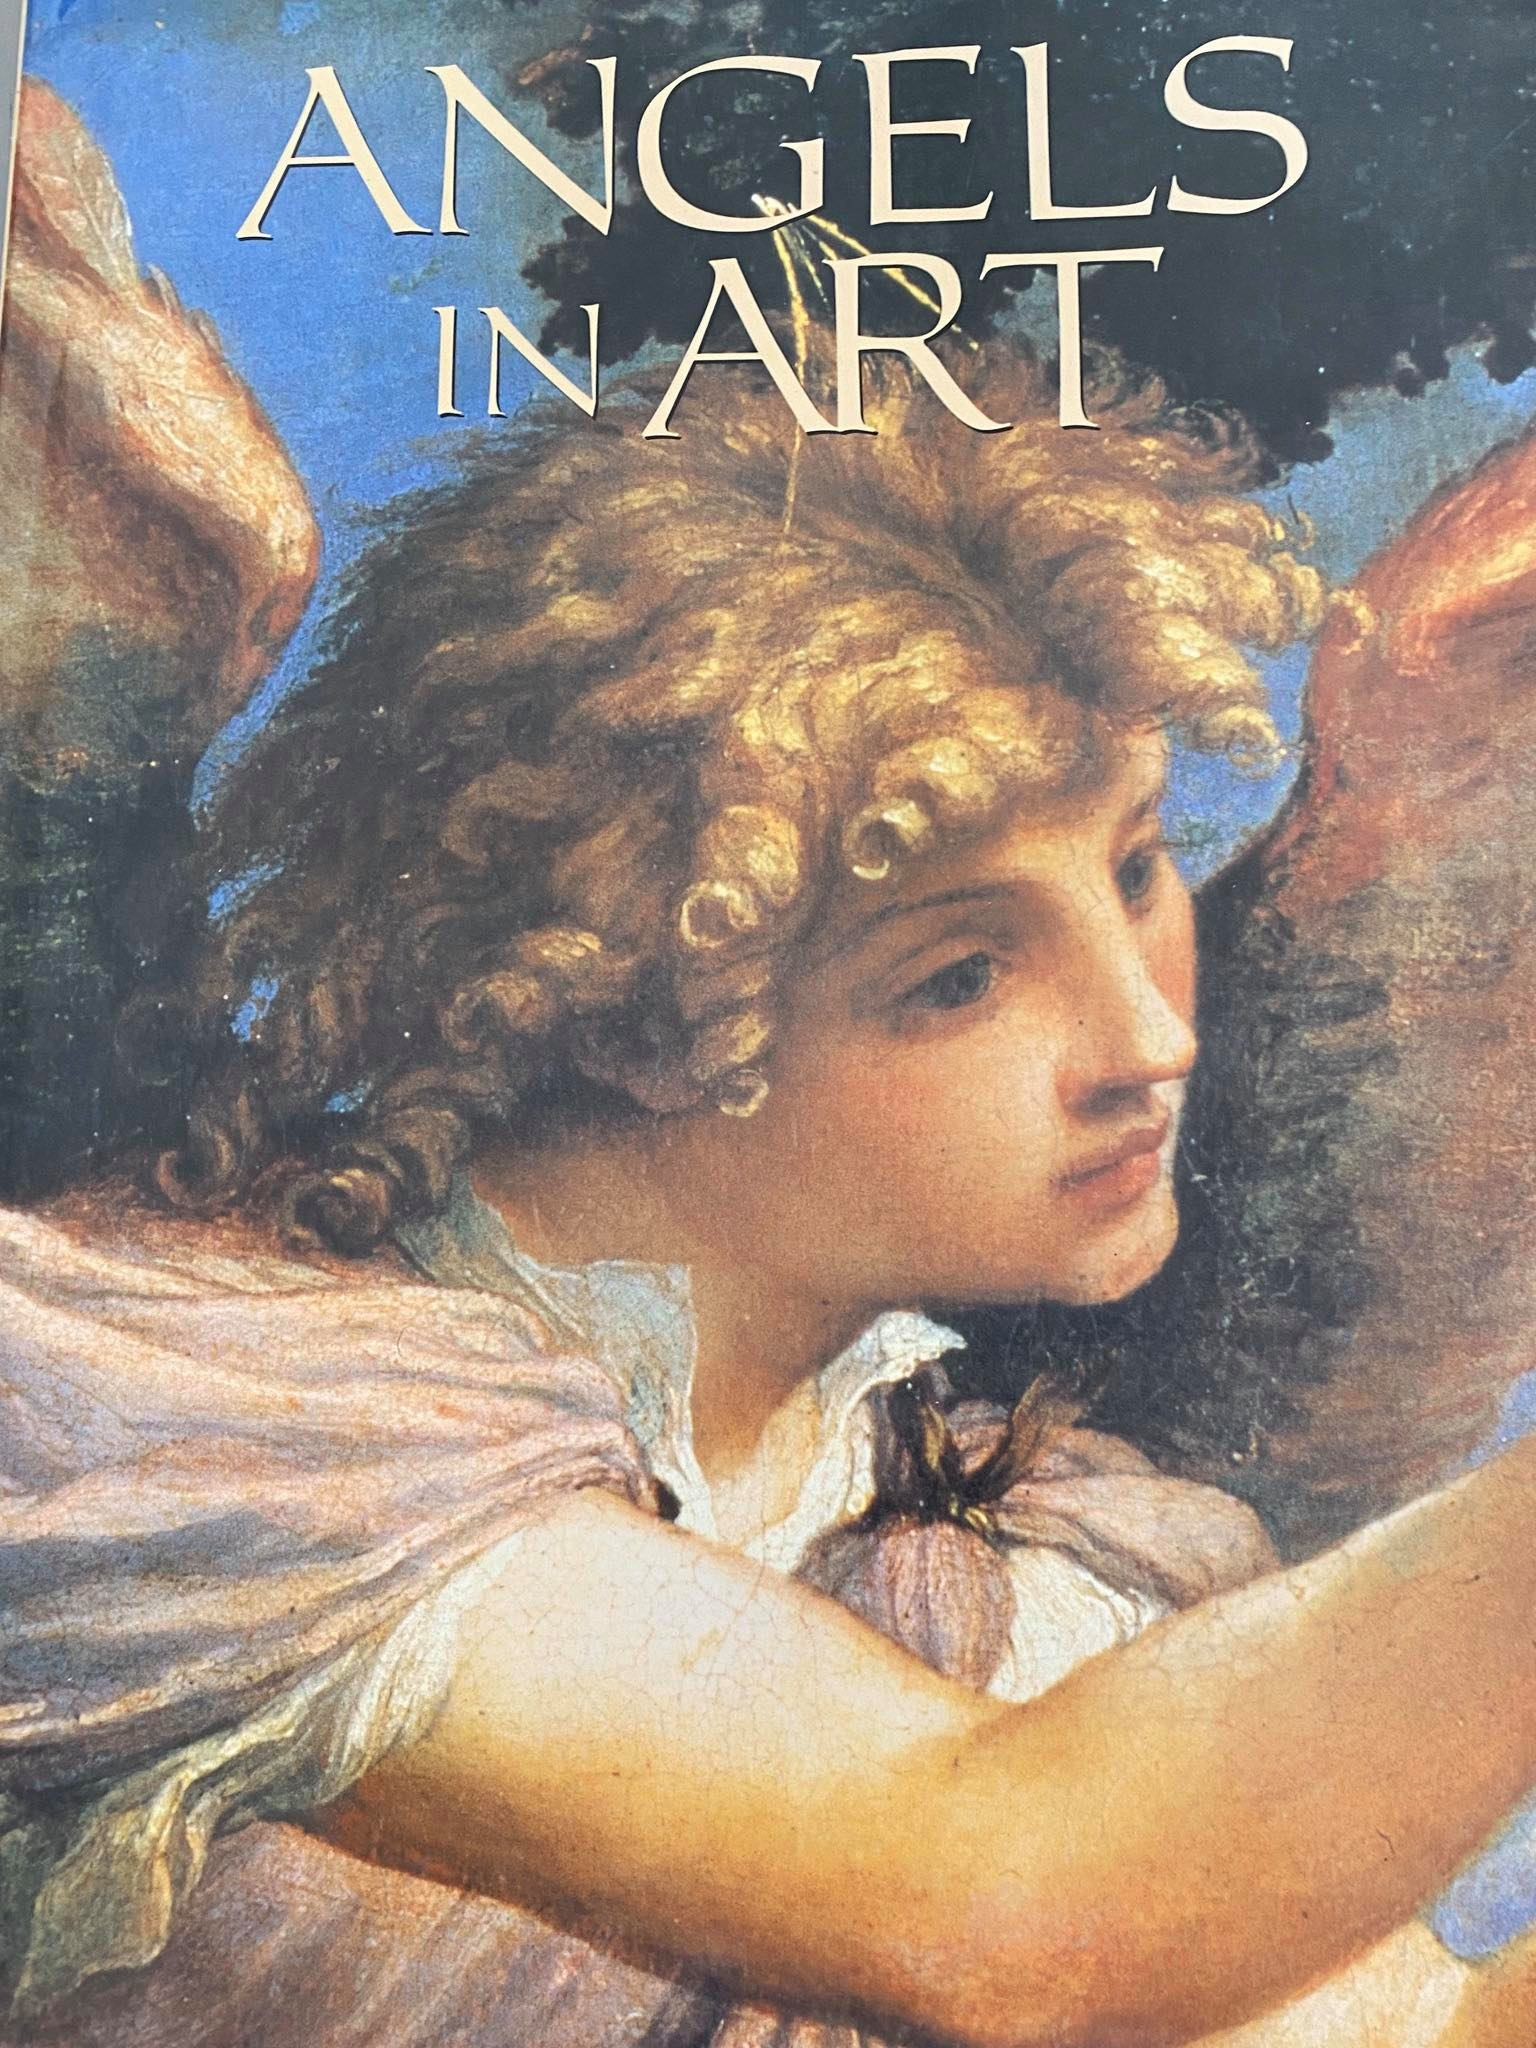 130. Angels in Art - Nancy Grubb